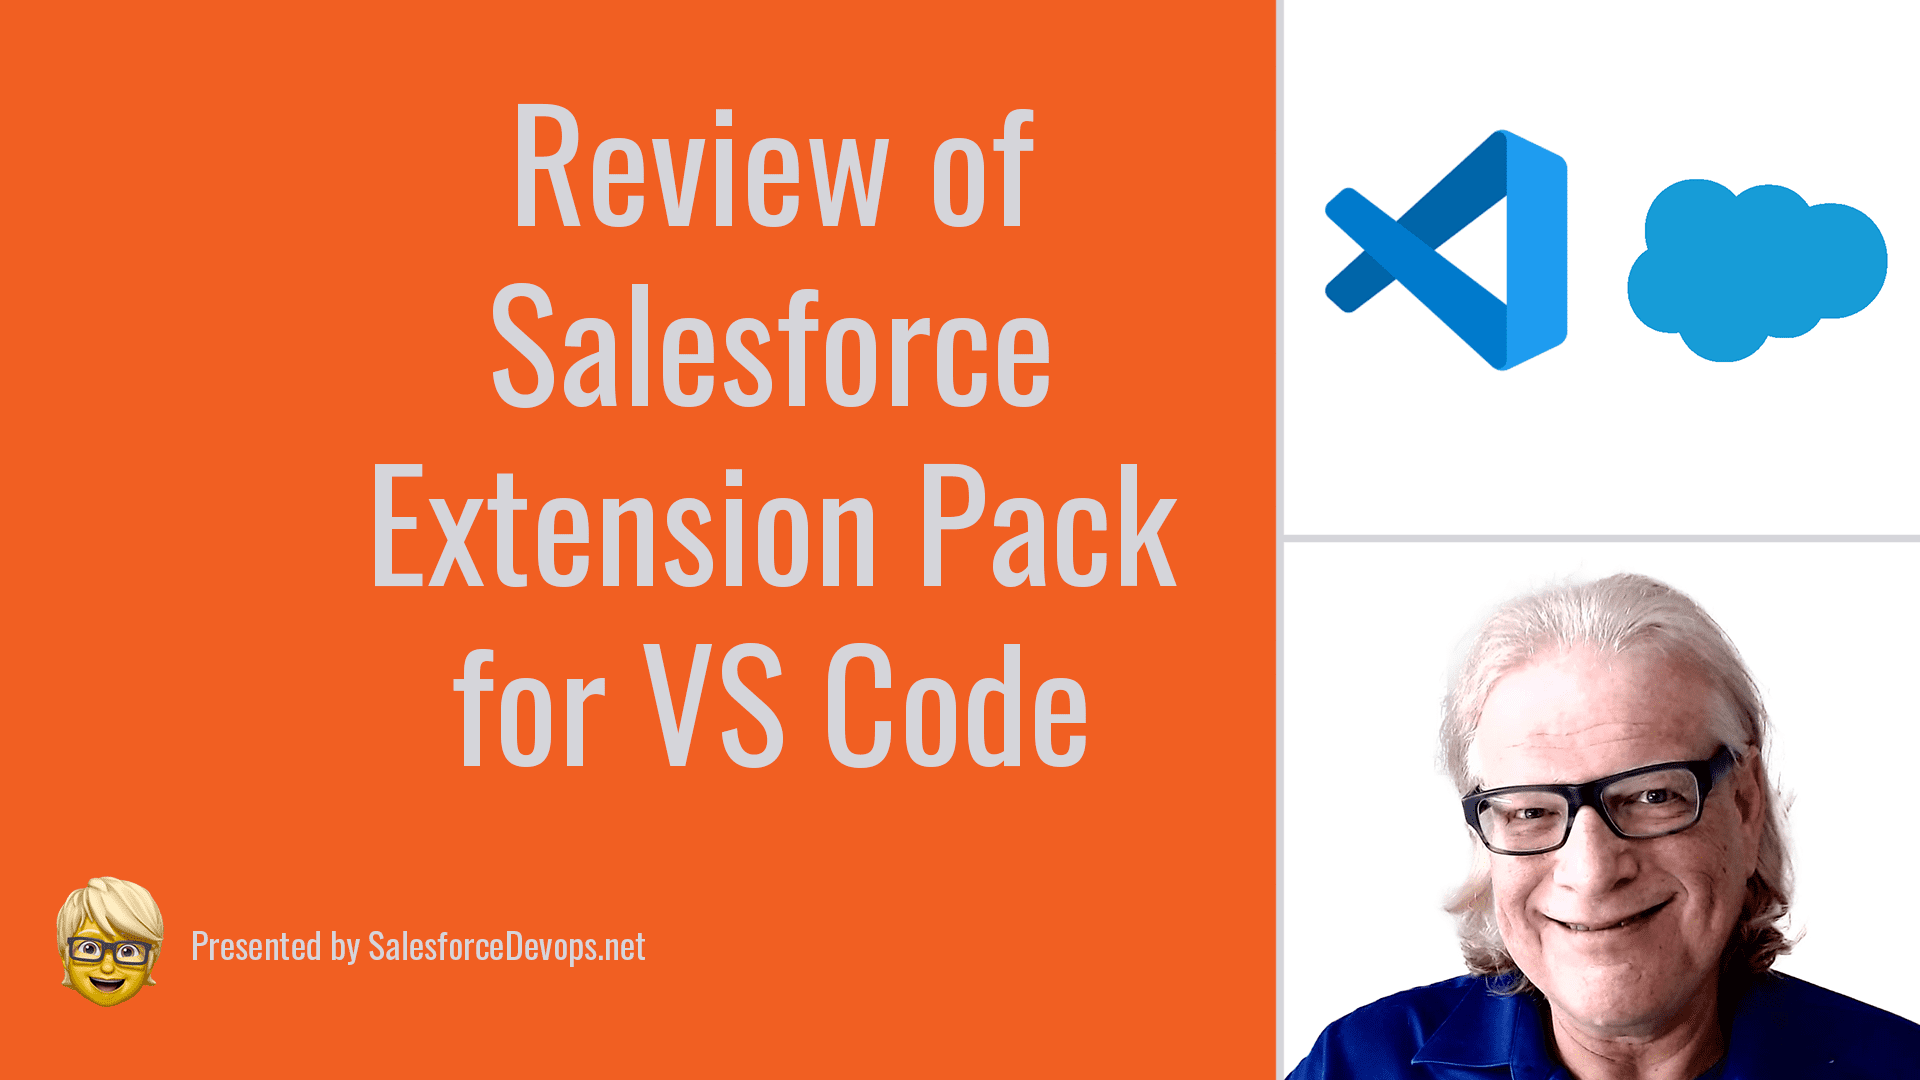 Salesforce Extension Pack Review